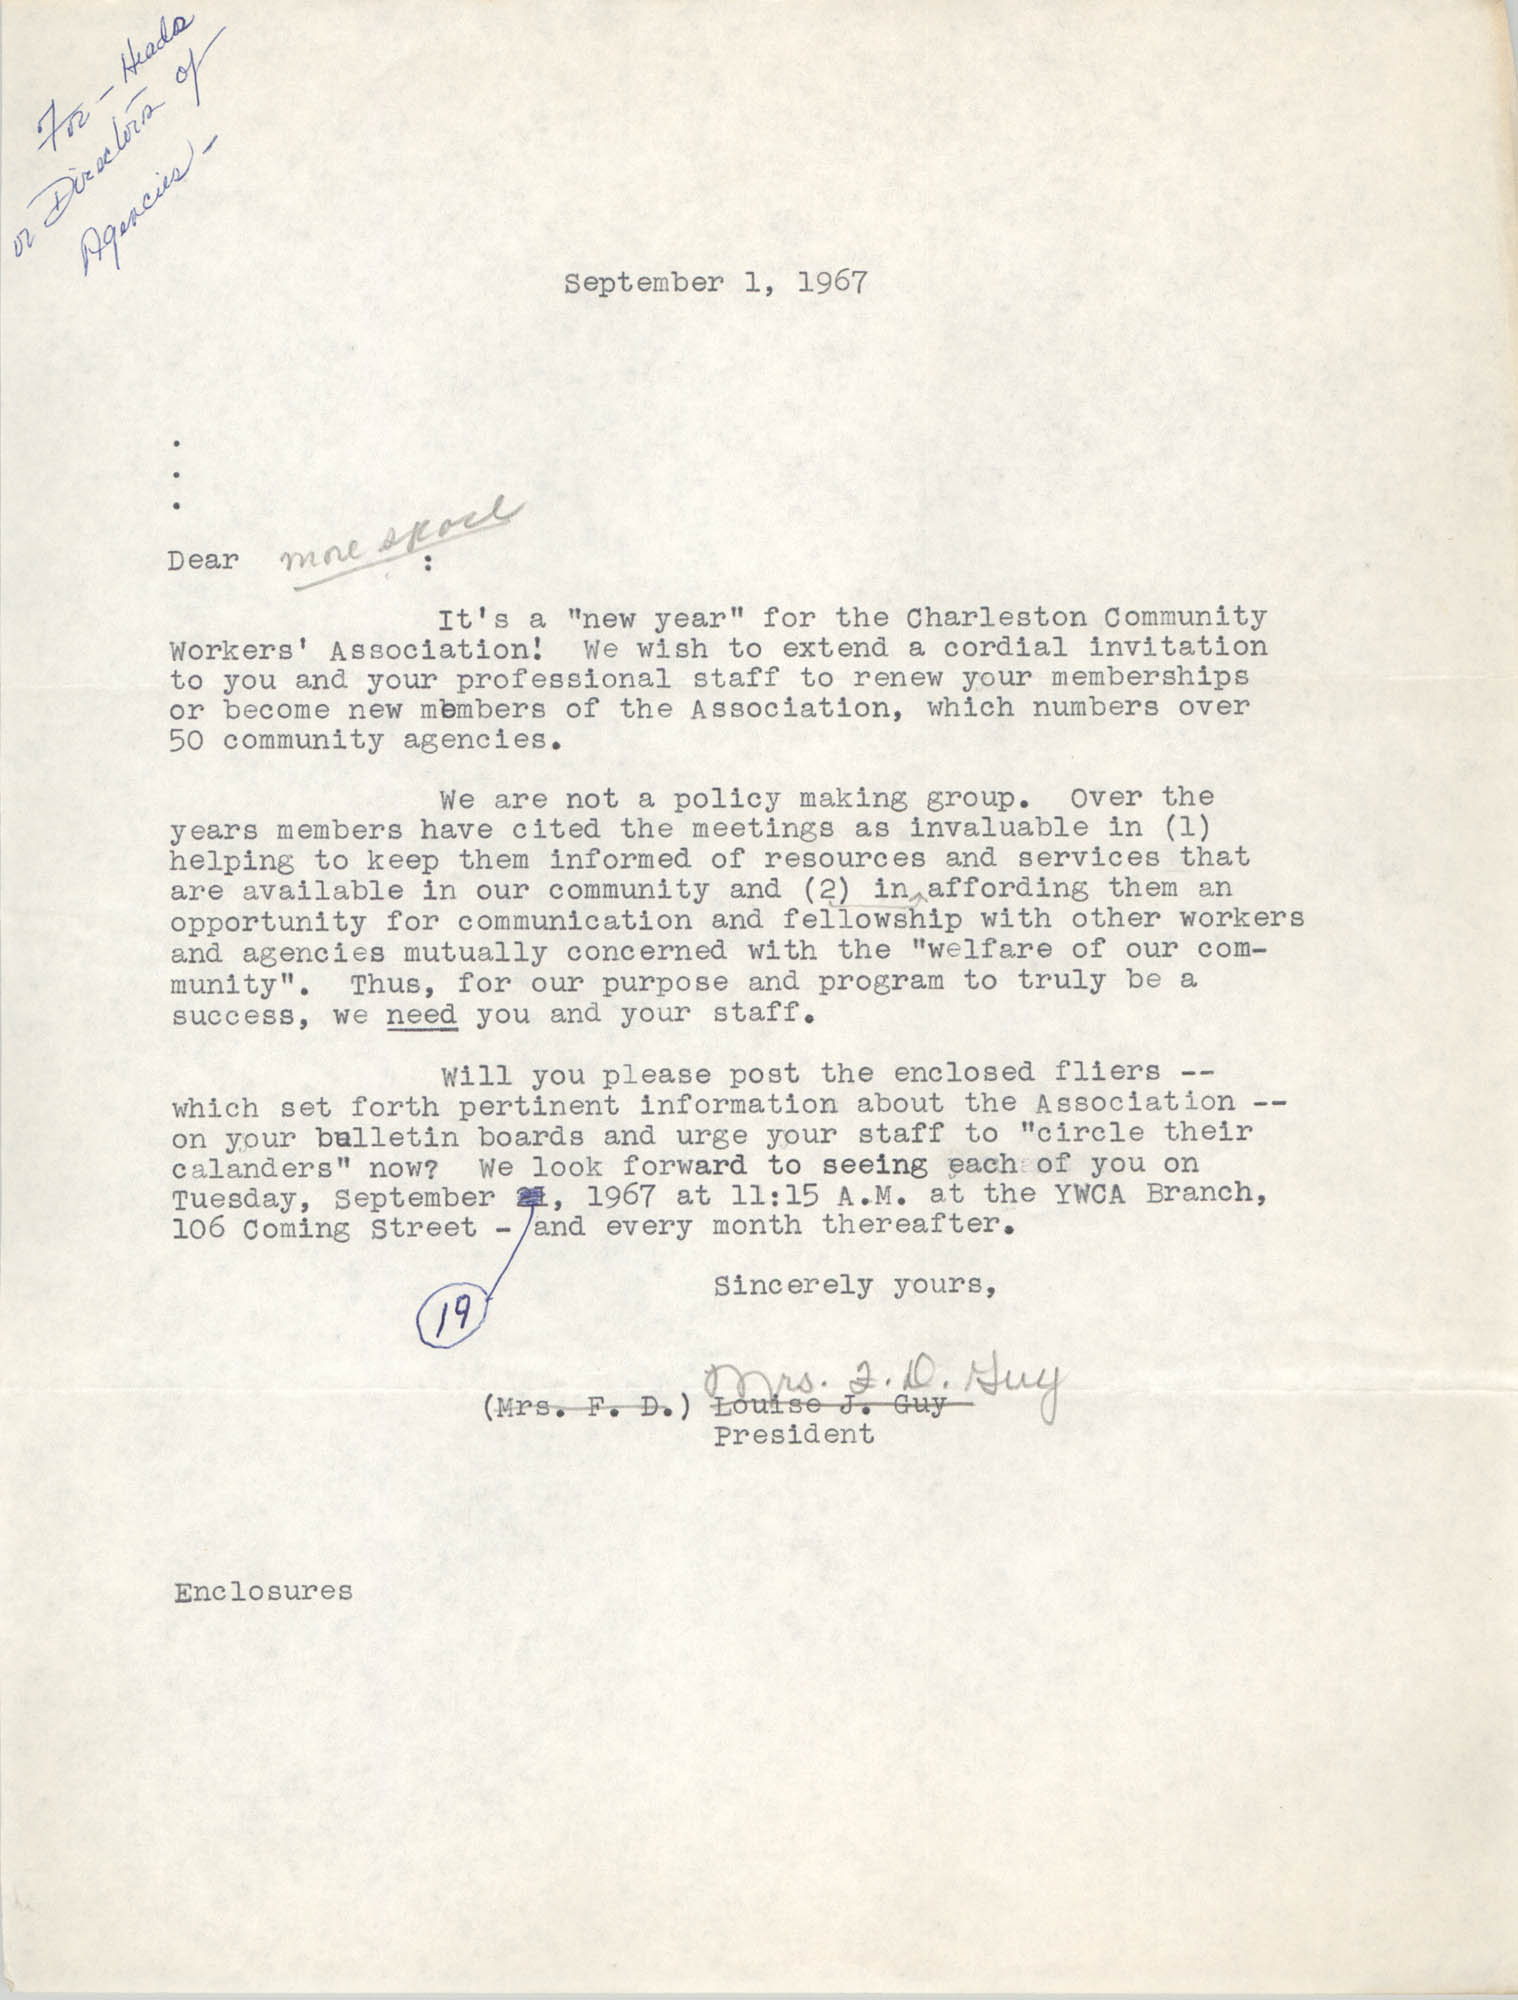 Letter from Louise J. Guy, September 1, 1967